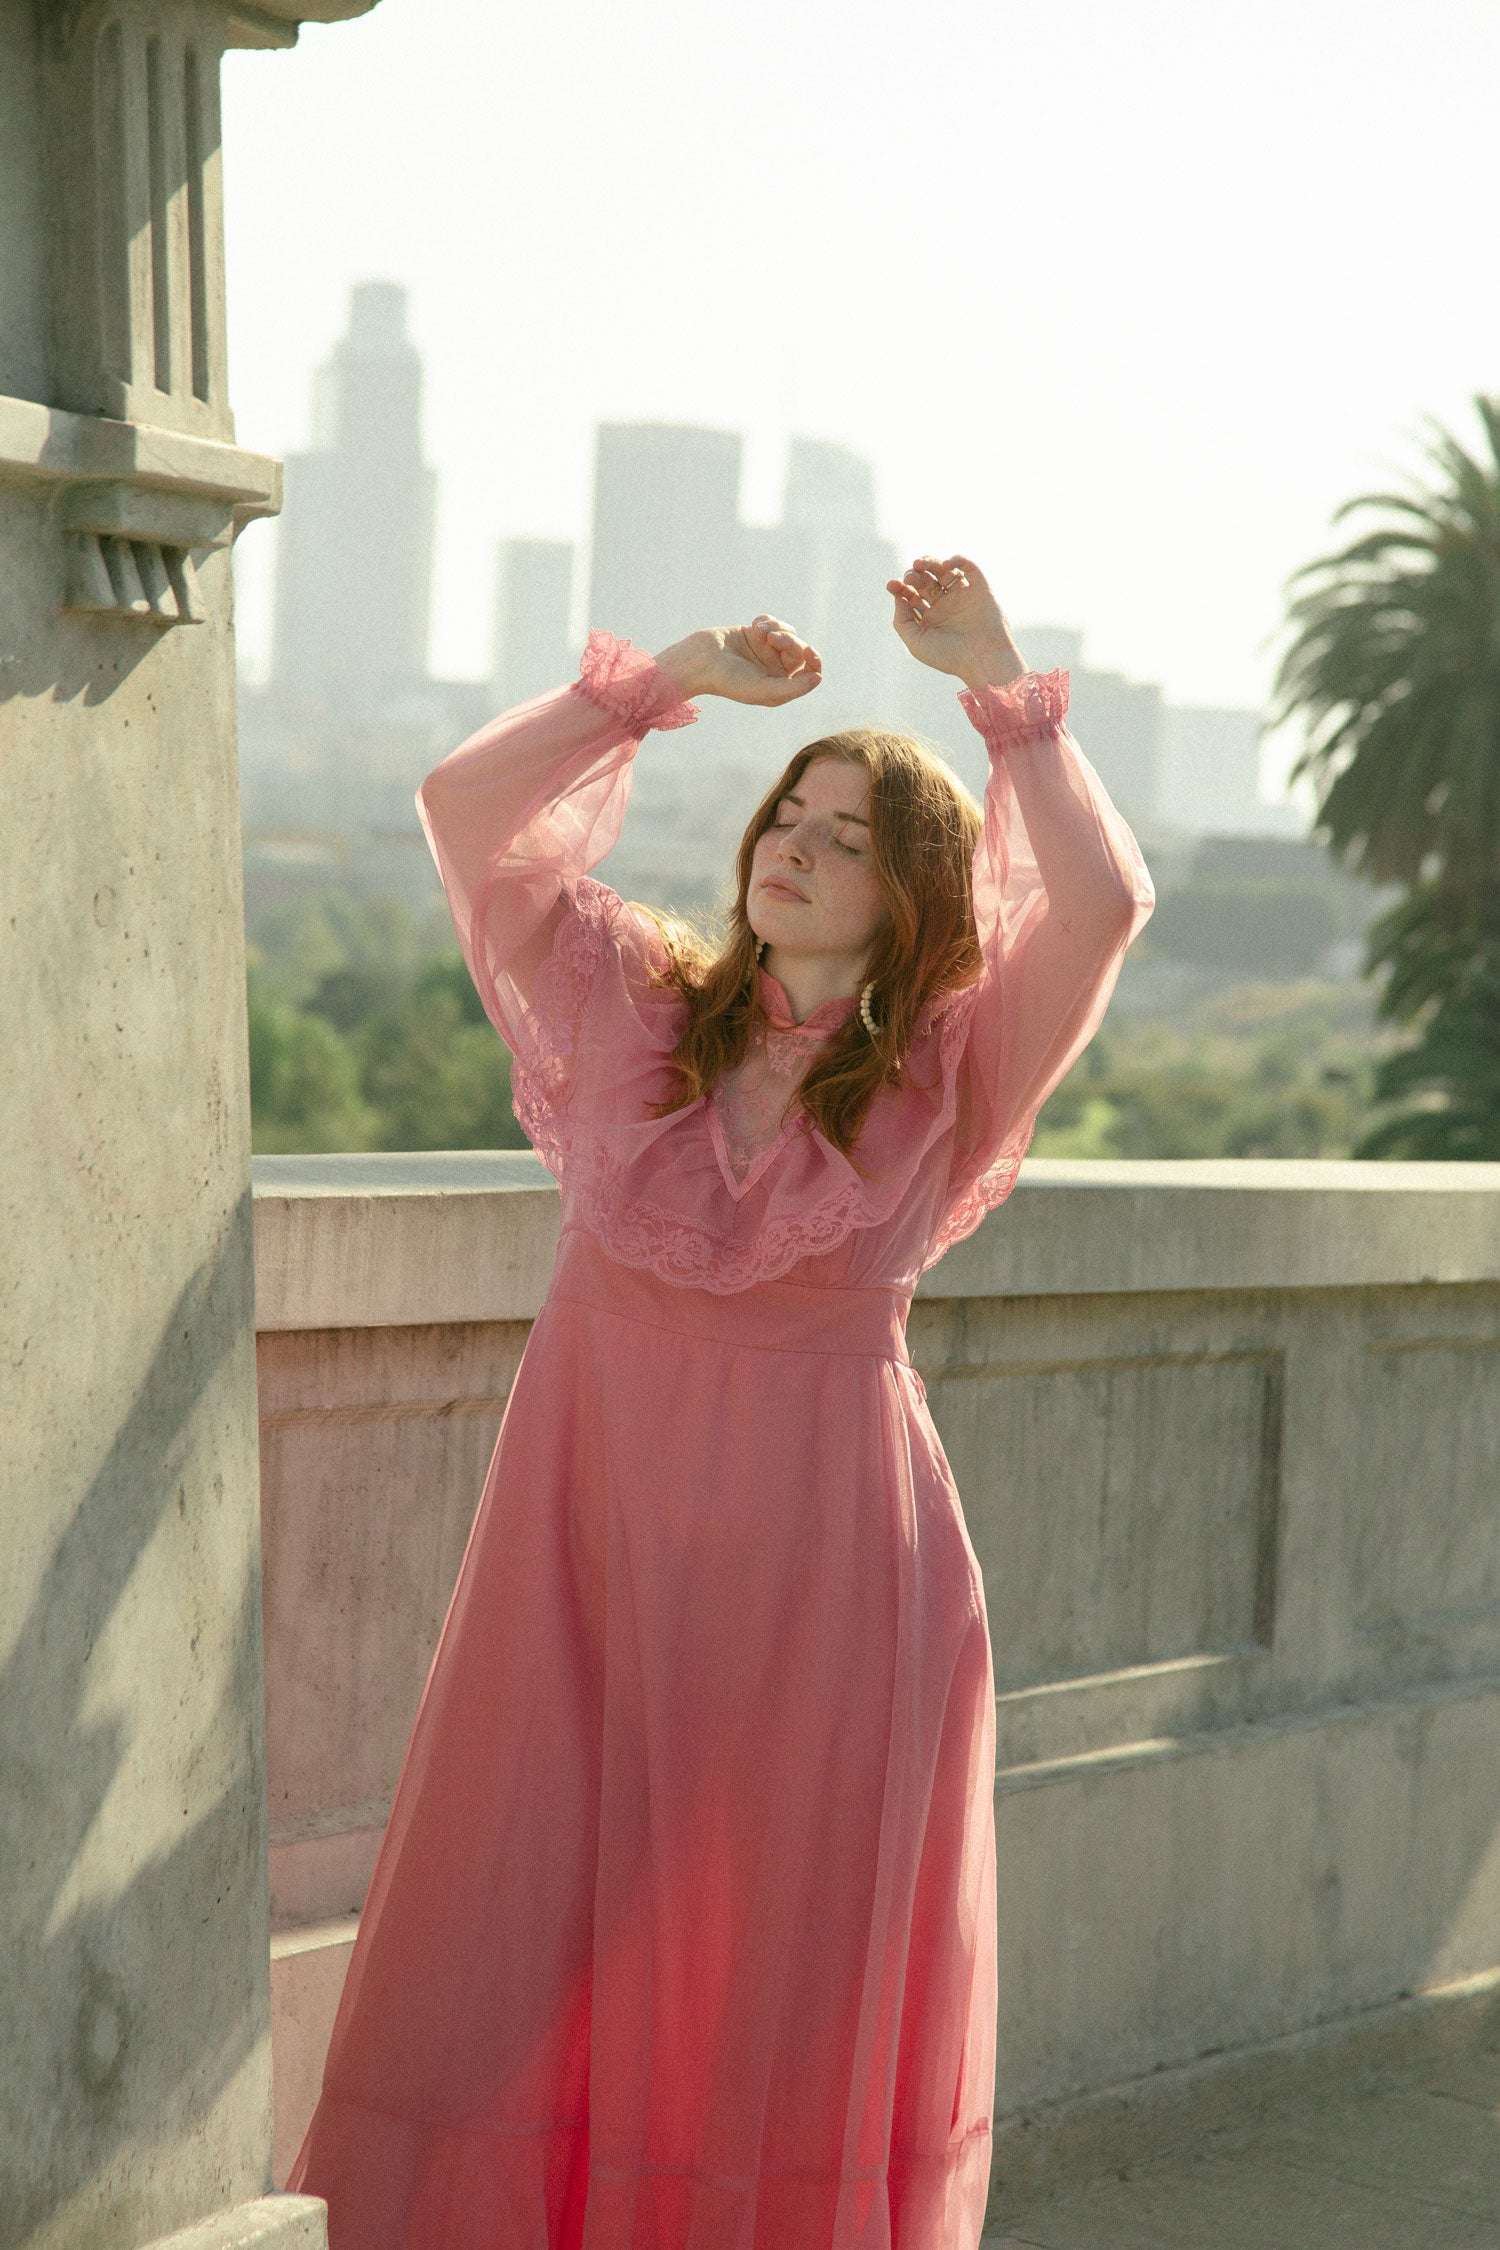 Woman standing on bridge with downtown Los Angeles in the background.  Wearing 80s prairie style, pink maxi dress.